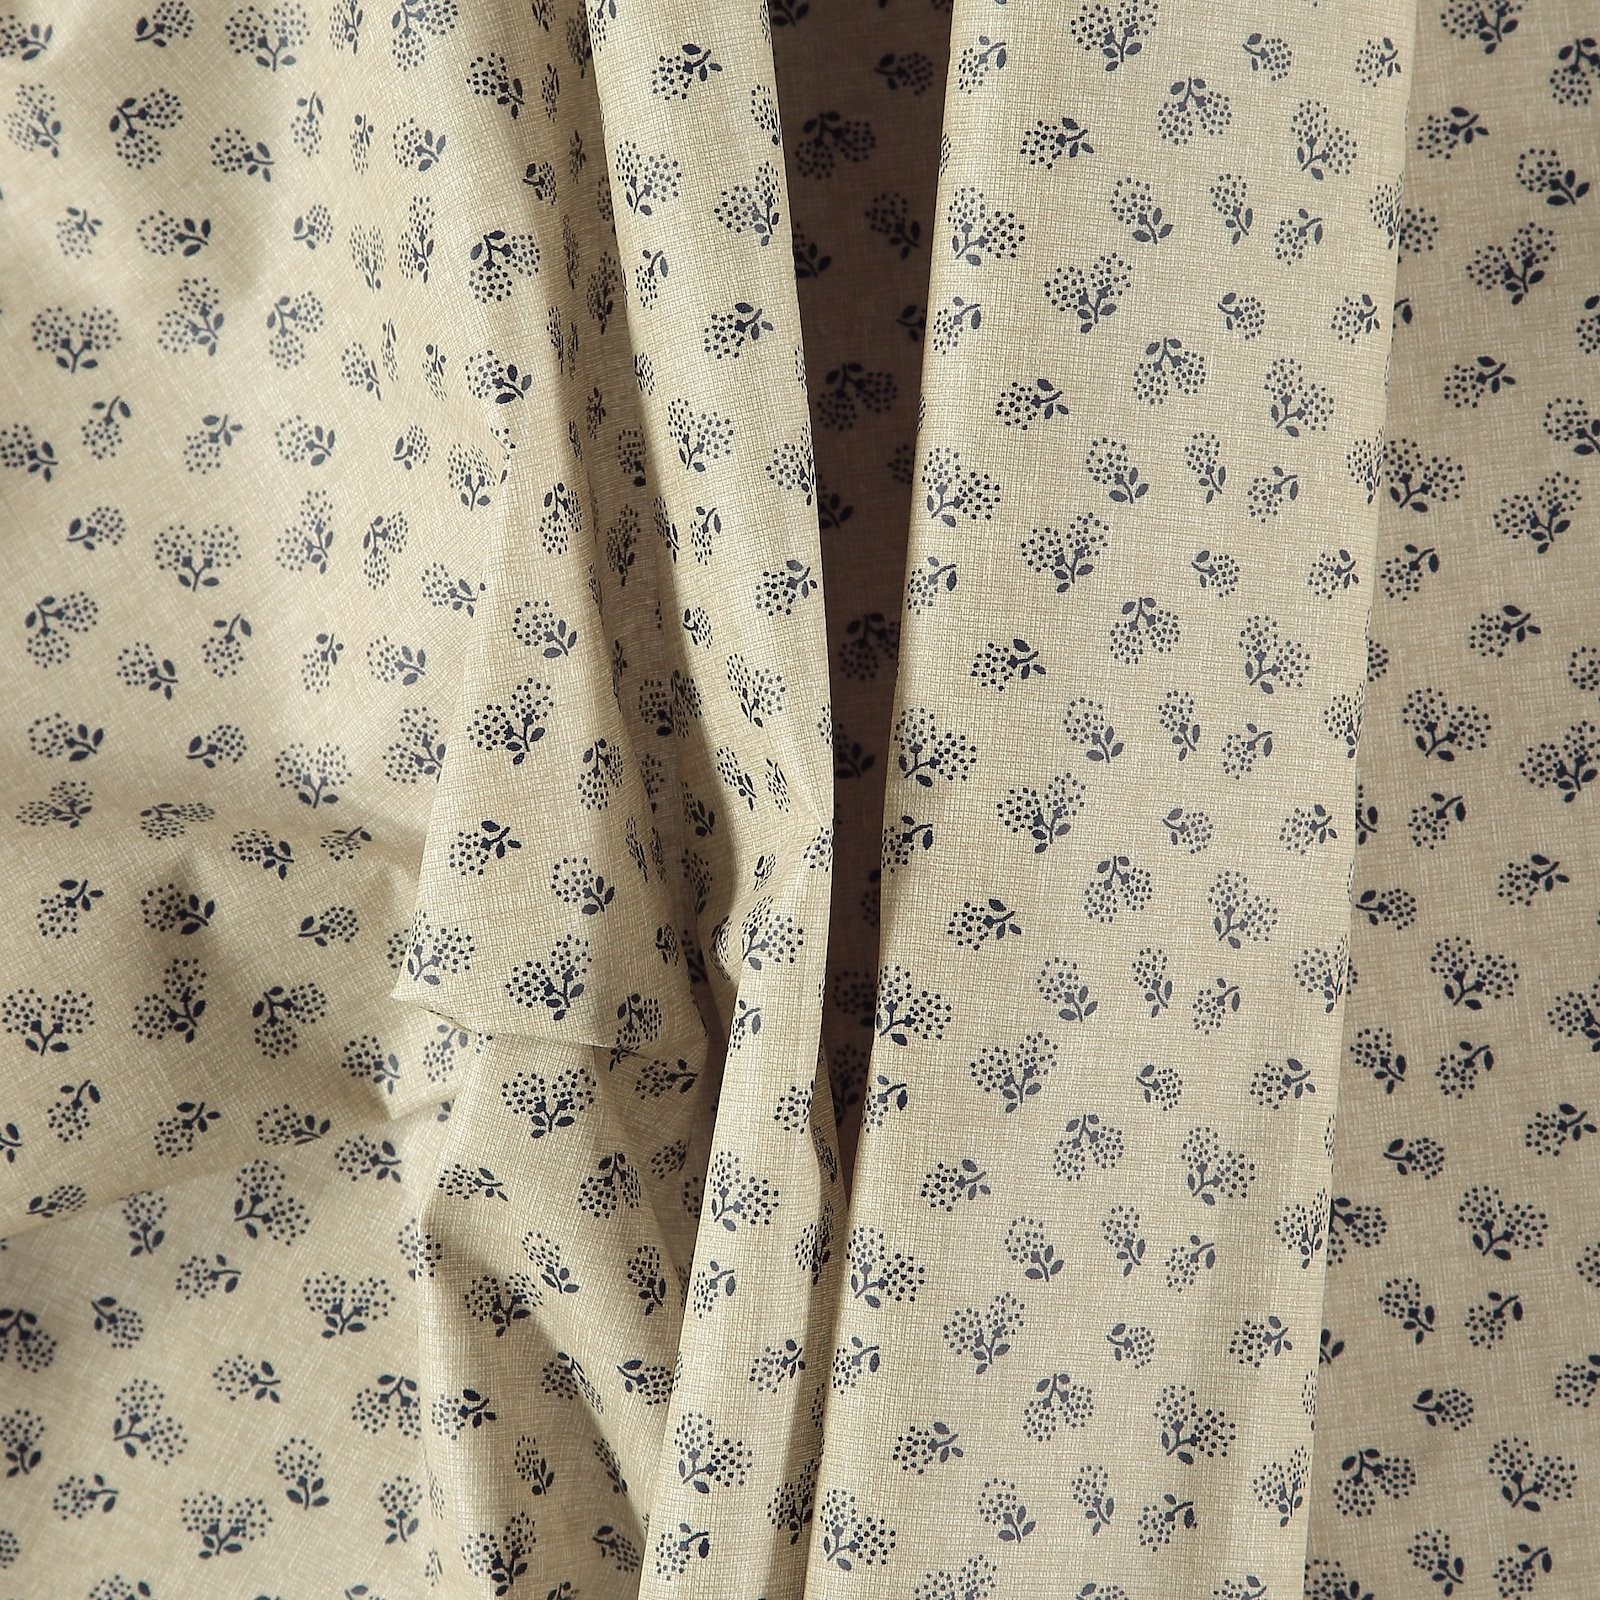 Woven oil cloth linen look with flowers